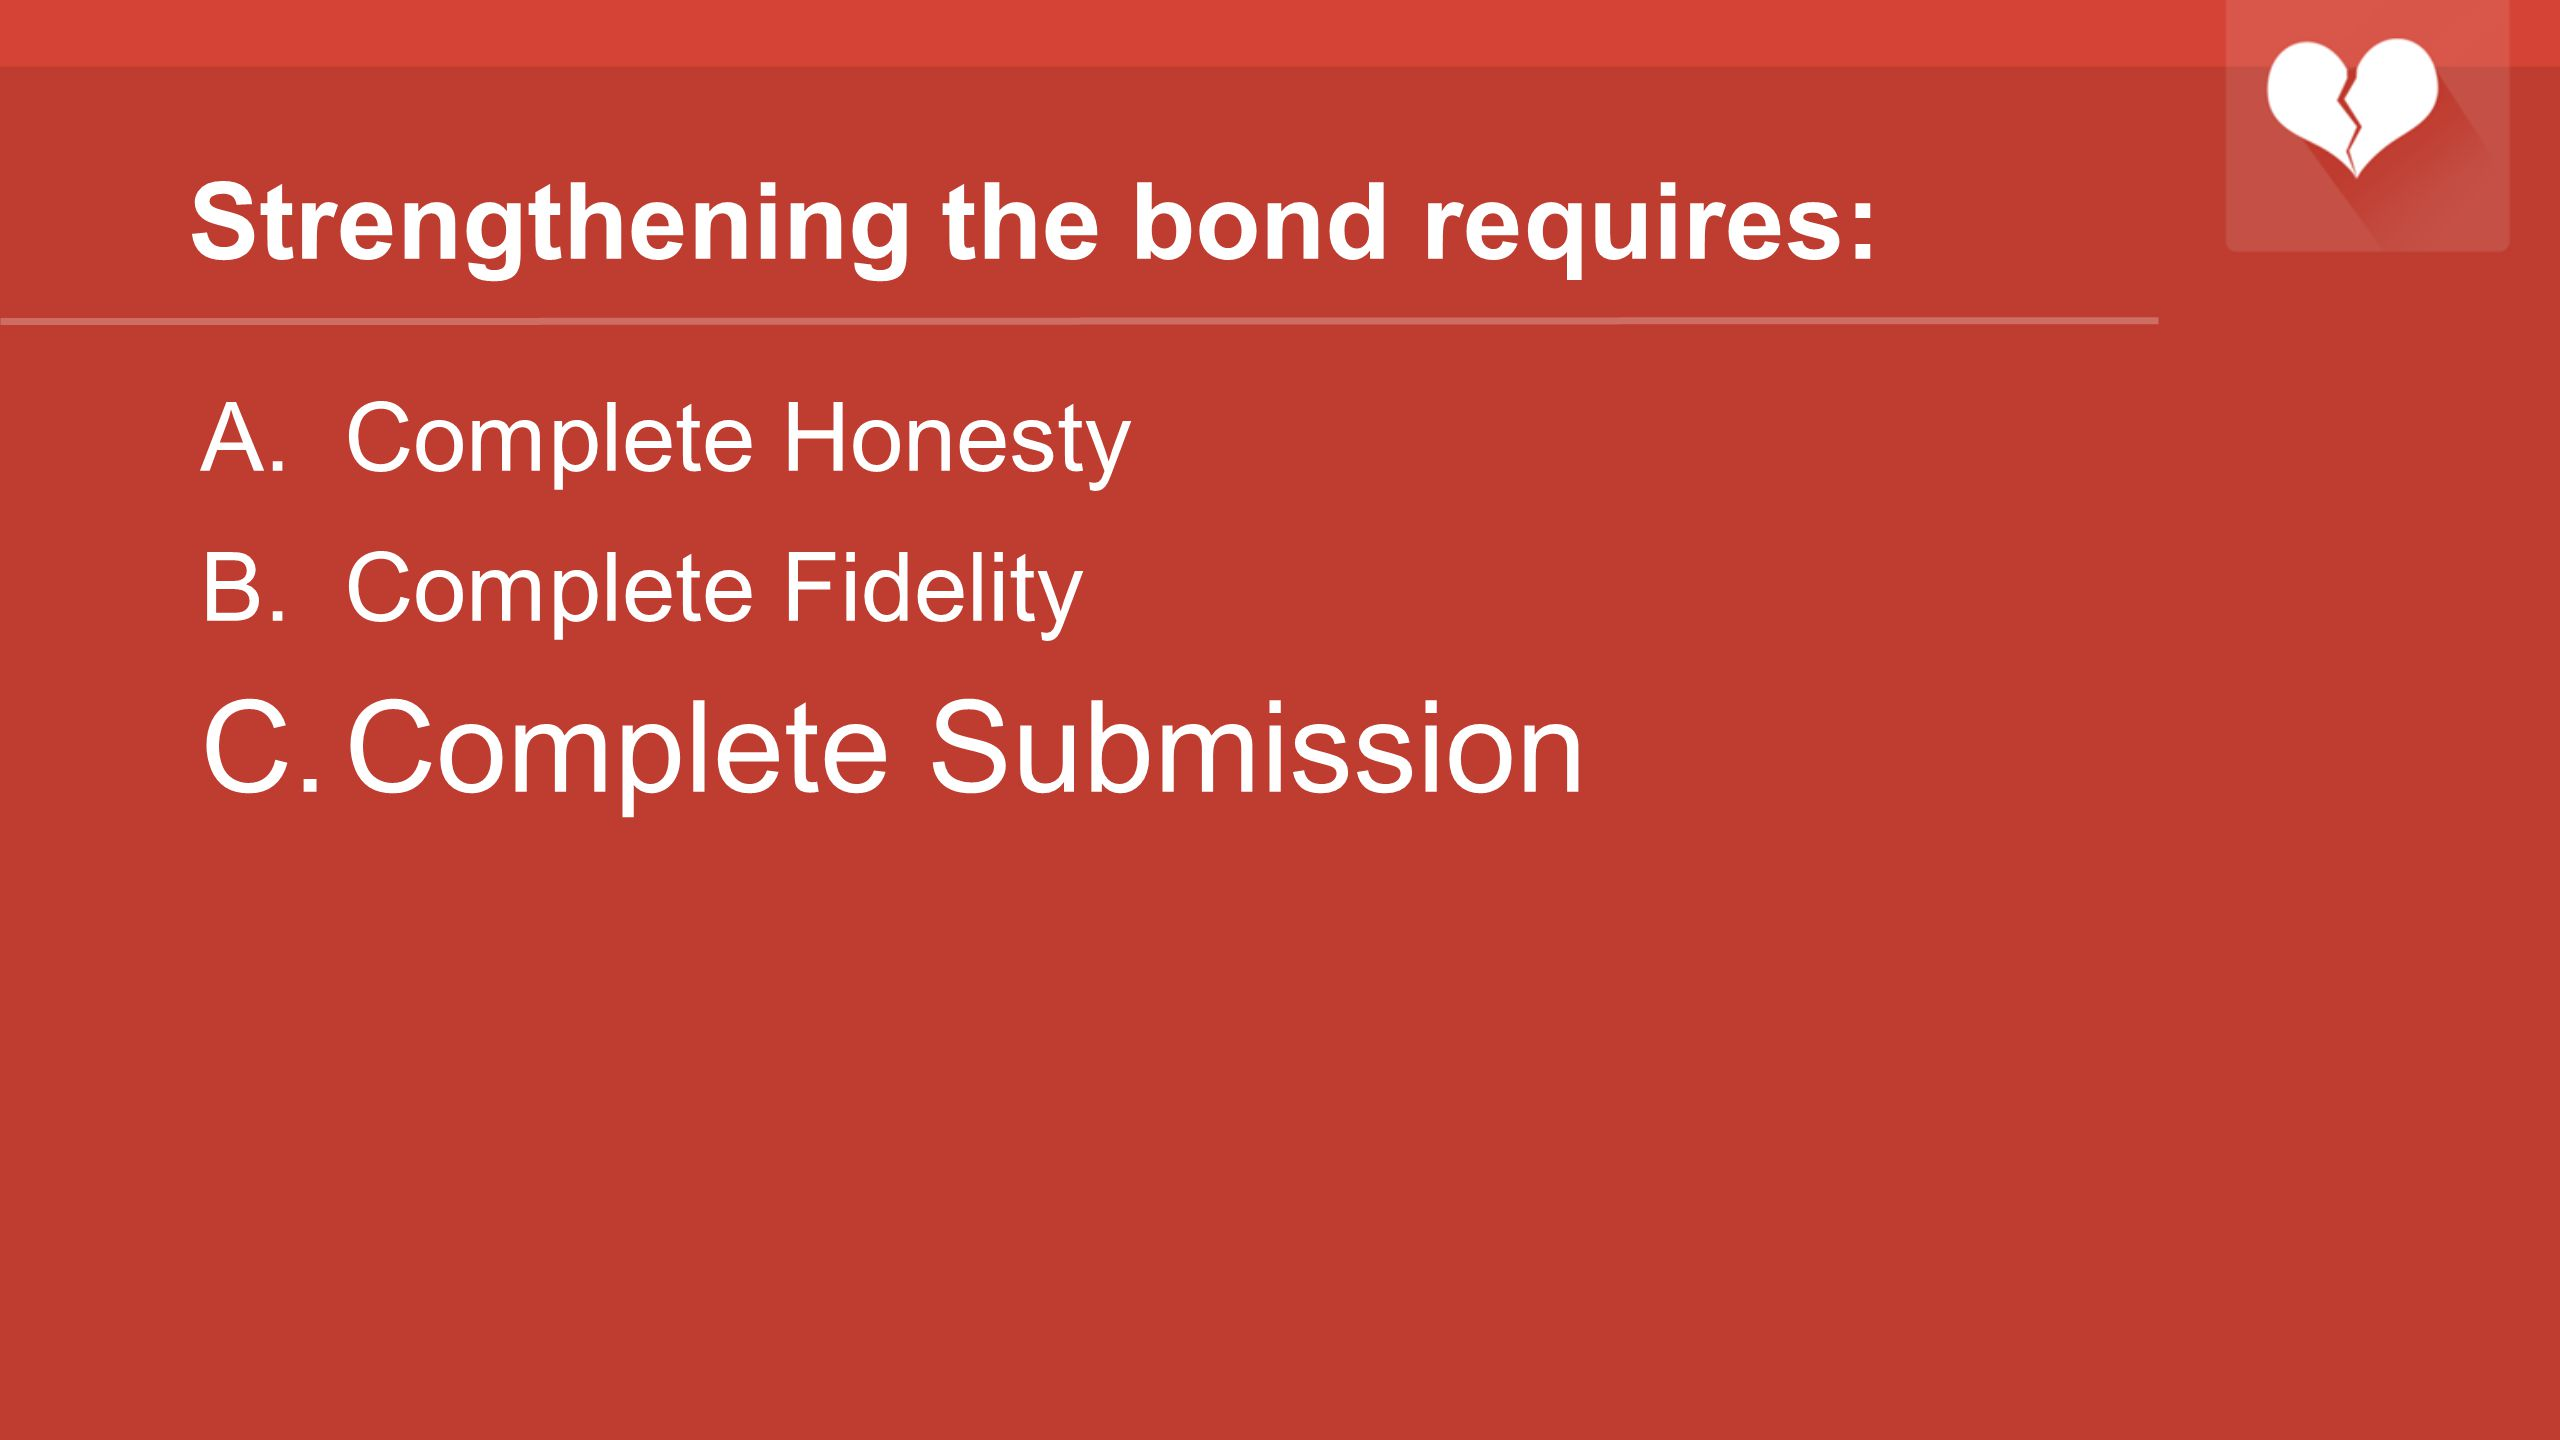 Strengthening the bond requires: A.Complete Honesty B.Complete Fidelity C.Complete Submission